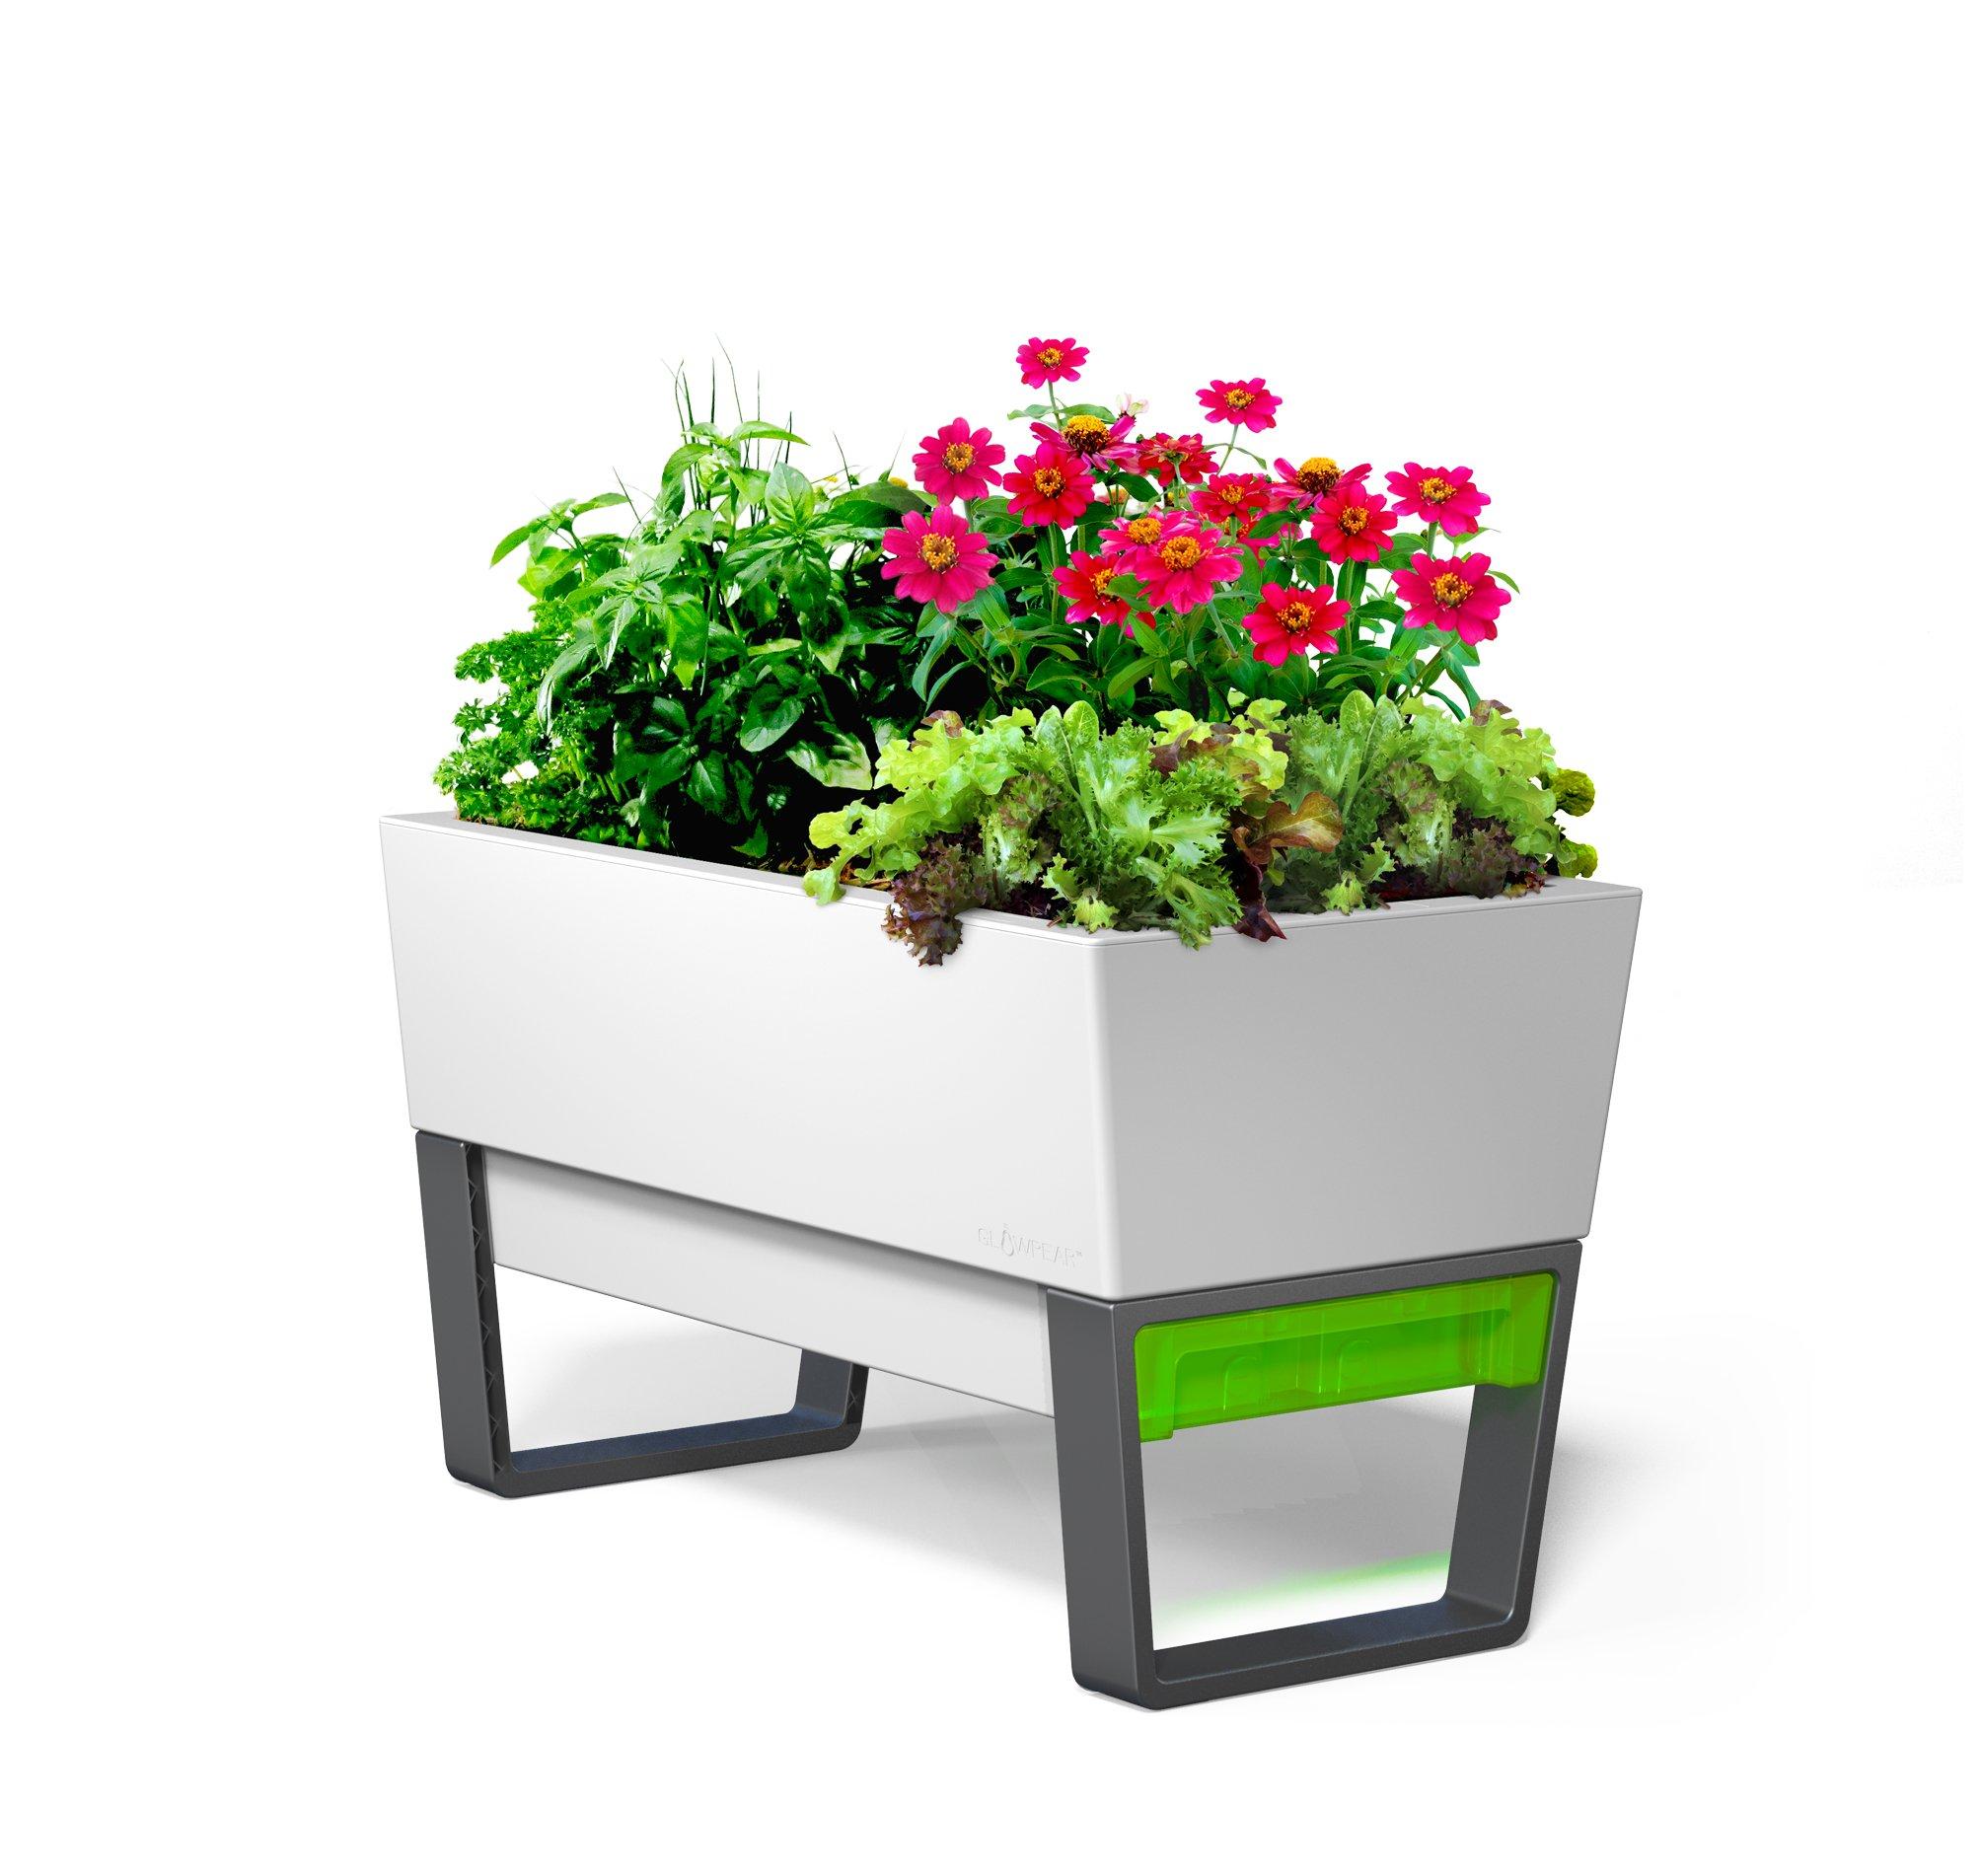 GlowPear Urban Garden Self-Watering Planter by Glowpear